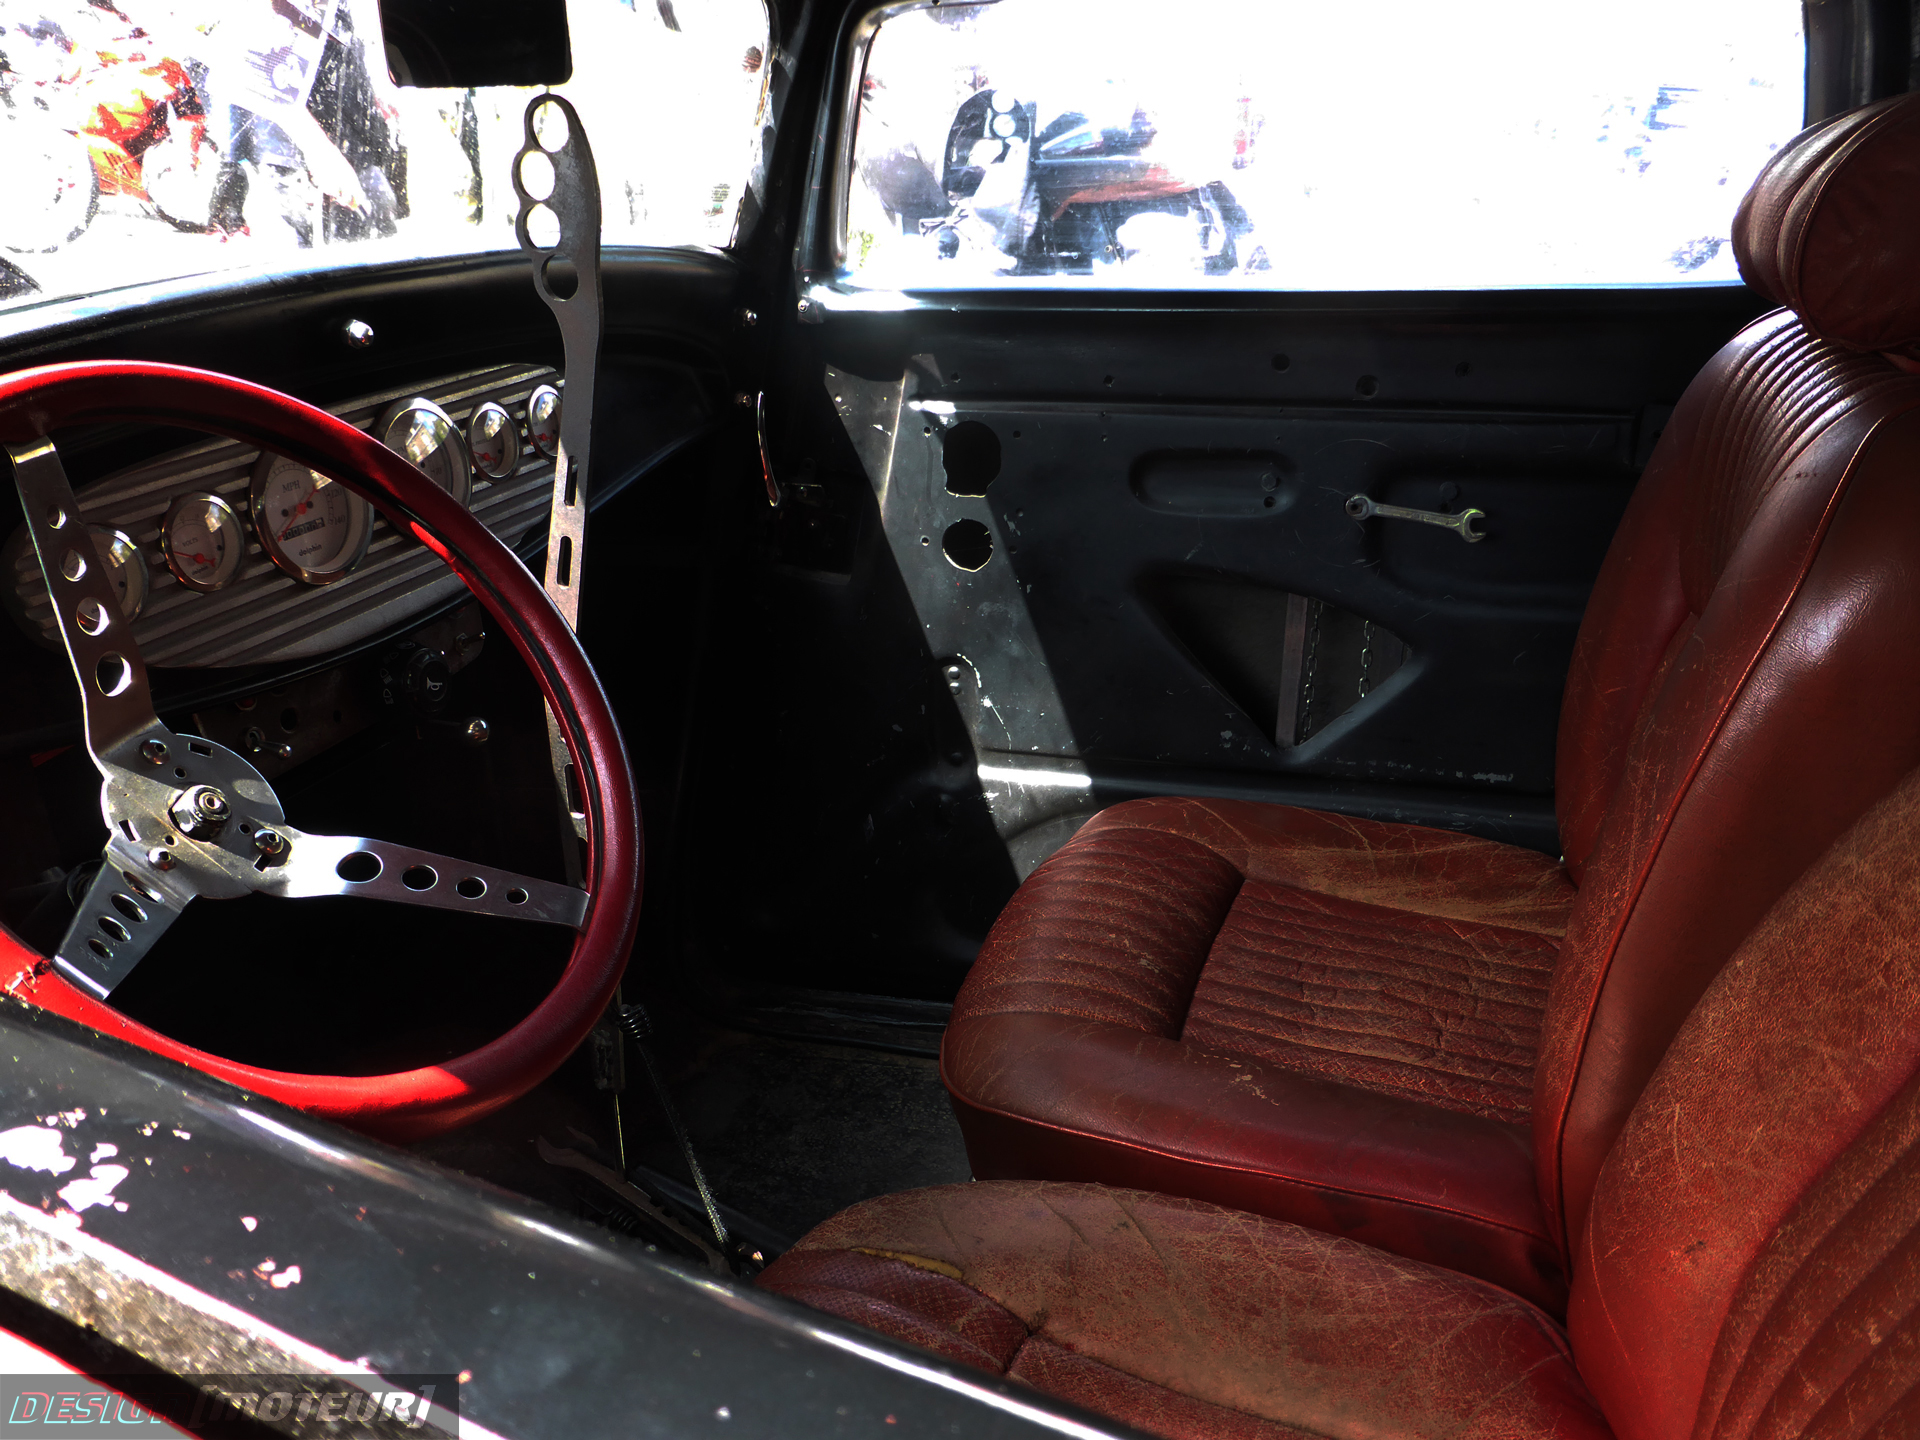 Ford hot rod - rad interior - steering wheel - US Cars and Bikes 2019 - photo ELJ DESIGNMOTEUR